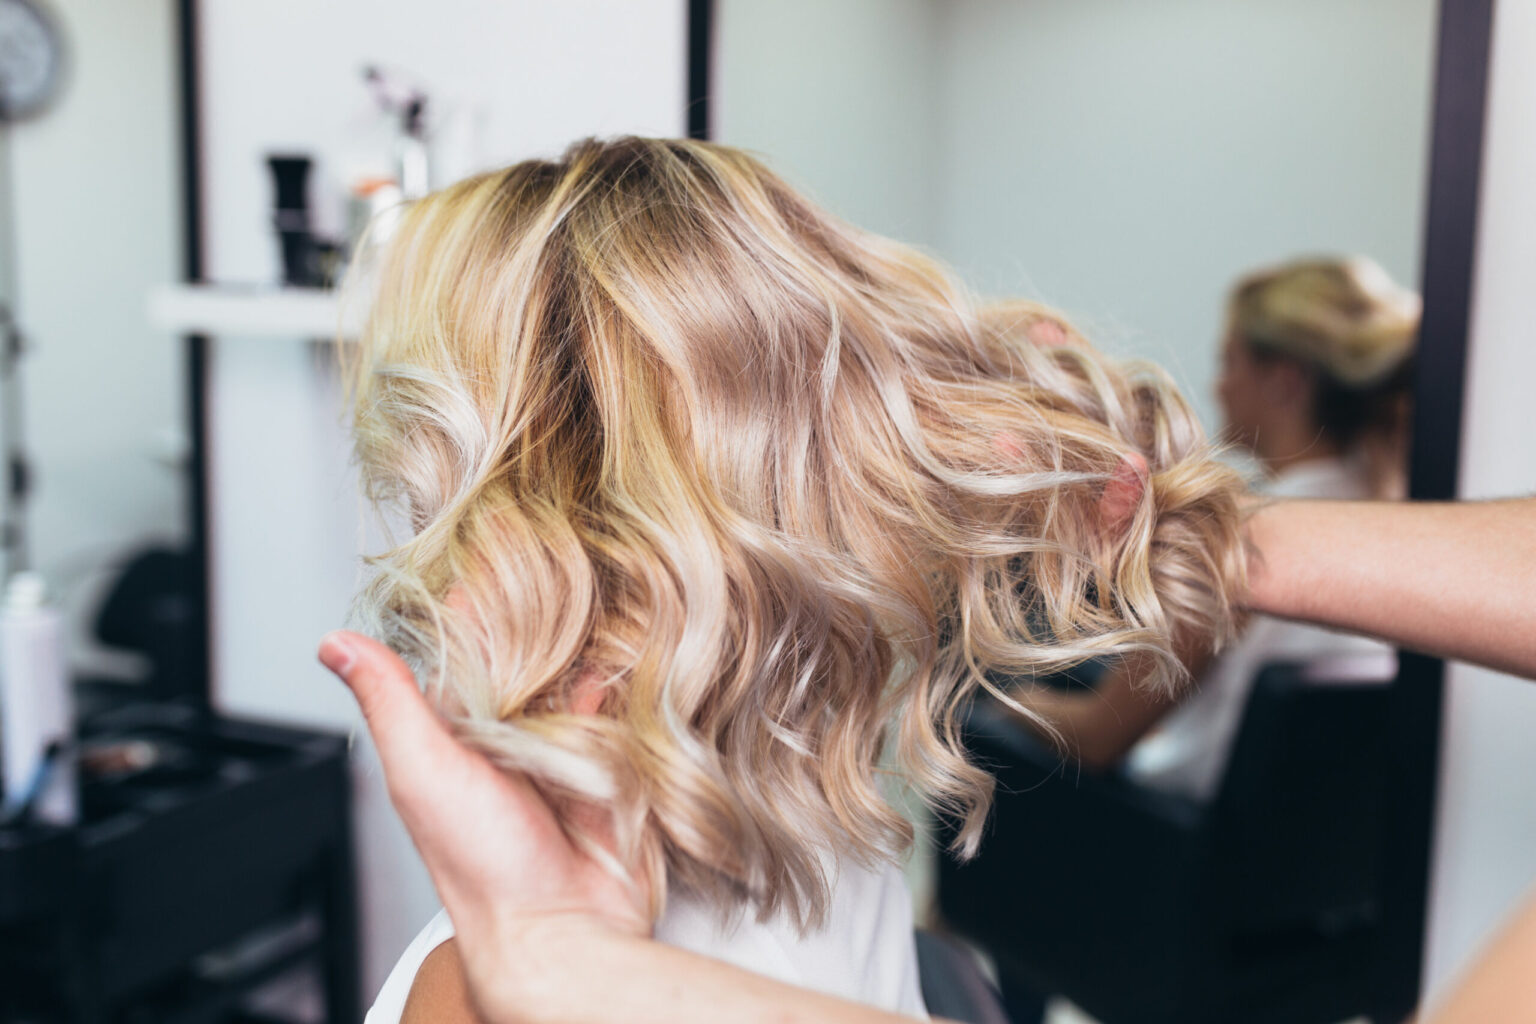 Highlighted blonde curls